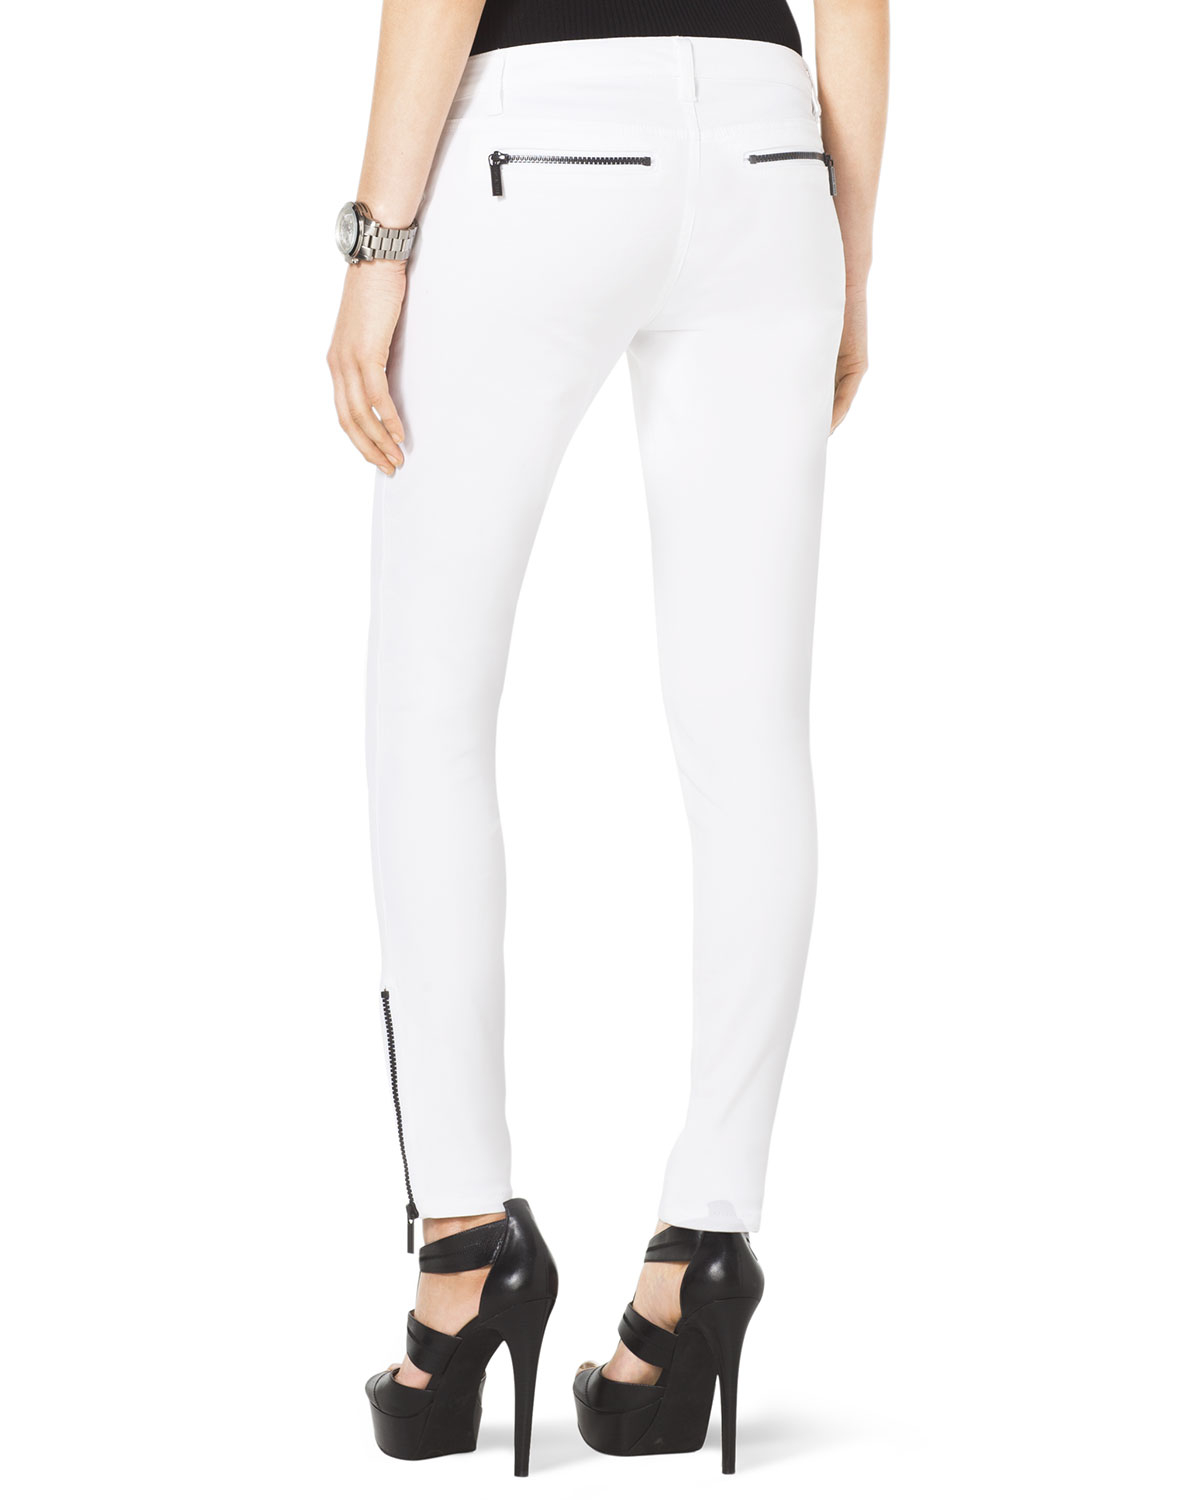 Michael michael kors Skinny Ankle Zip Jeans in White | Lyst